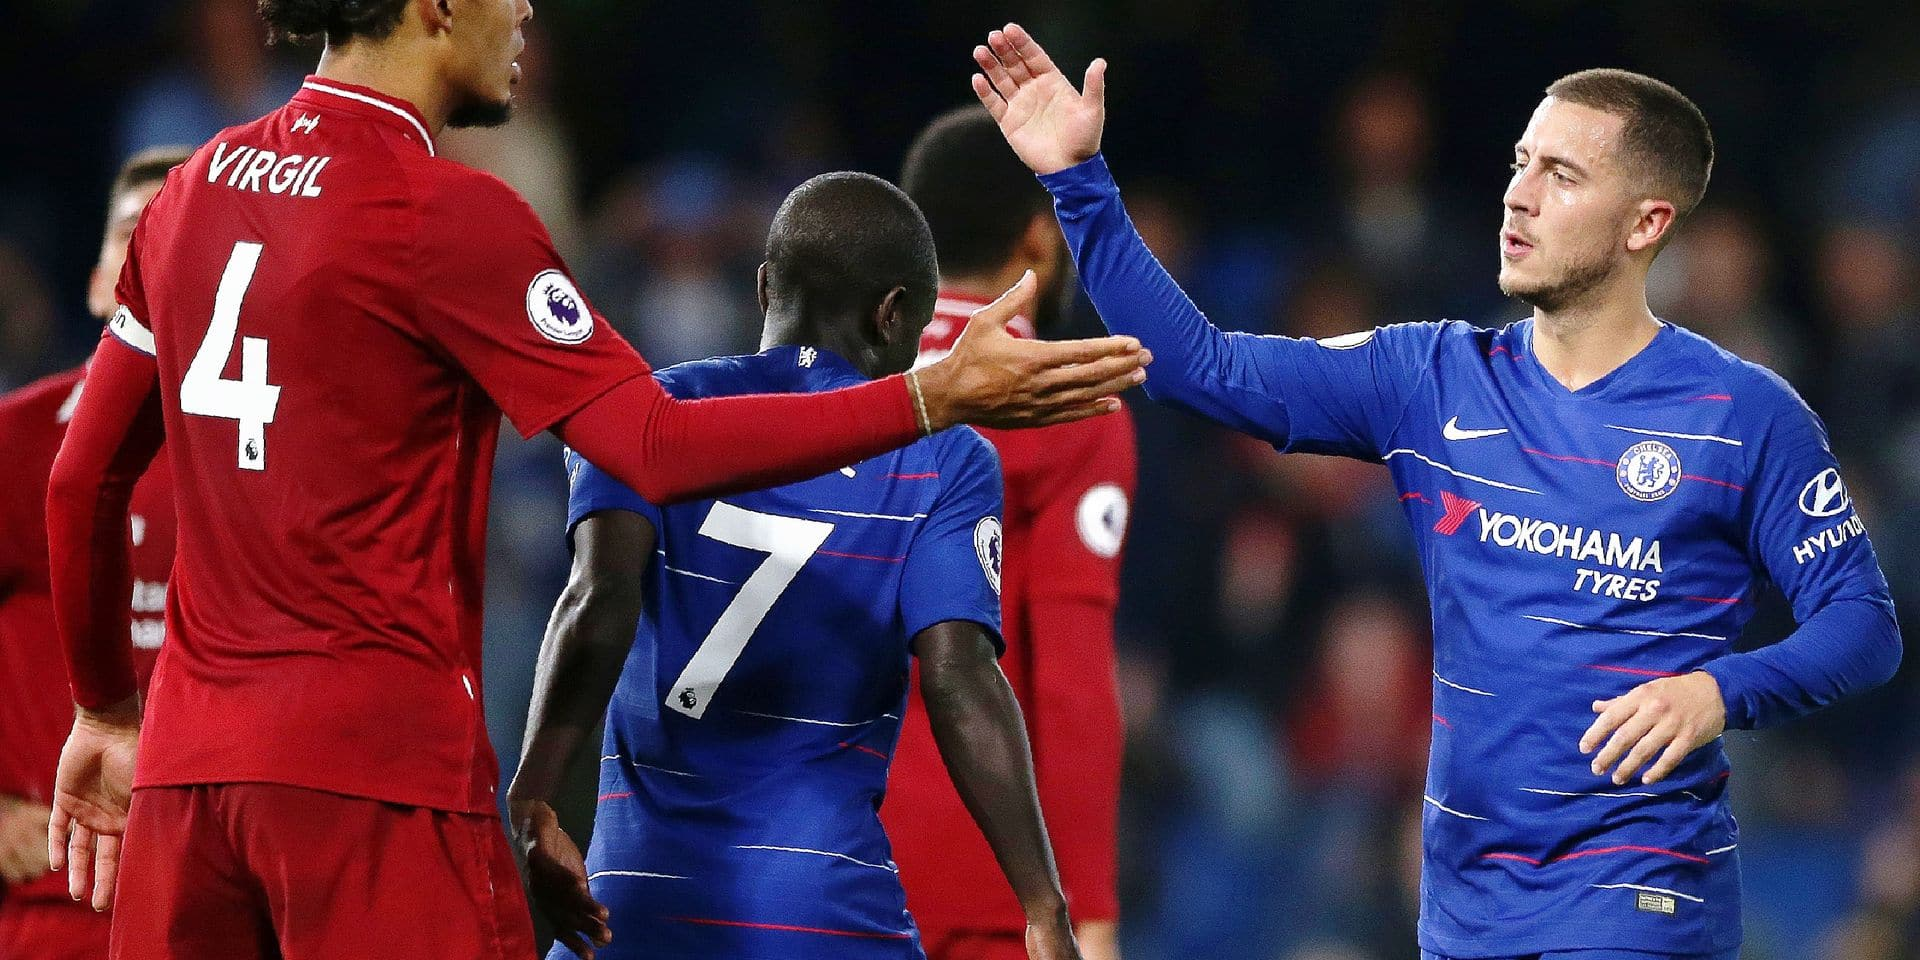 Liverpool's Dutch defender Virgil van Dijk (L) and Chelsea's Belgian midfielder Eden Hazard shake hands after the English Premier League football match between Chelsea and Liverpool at Stamford Bridge in London on September 29, 2018. (Photo by Daniel LEAL-OLIVAS / AFP) / RESTRICTED TO EDITORIAL USE. No use with unauthorized audio, video, data, fixture lists, club/league logos or 'live' services. Online in-match use limited to 120 images. An additional 40 images may be used in extra time. No video emulation. Social media in-match use limited to 120 images. An additional 40 images may be used in extra time. No use in betting publications, games or single club/league/player publications. /